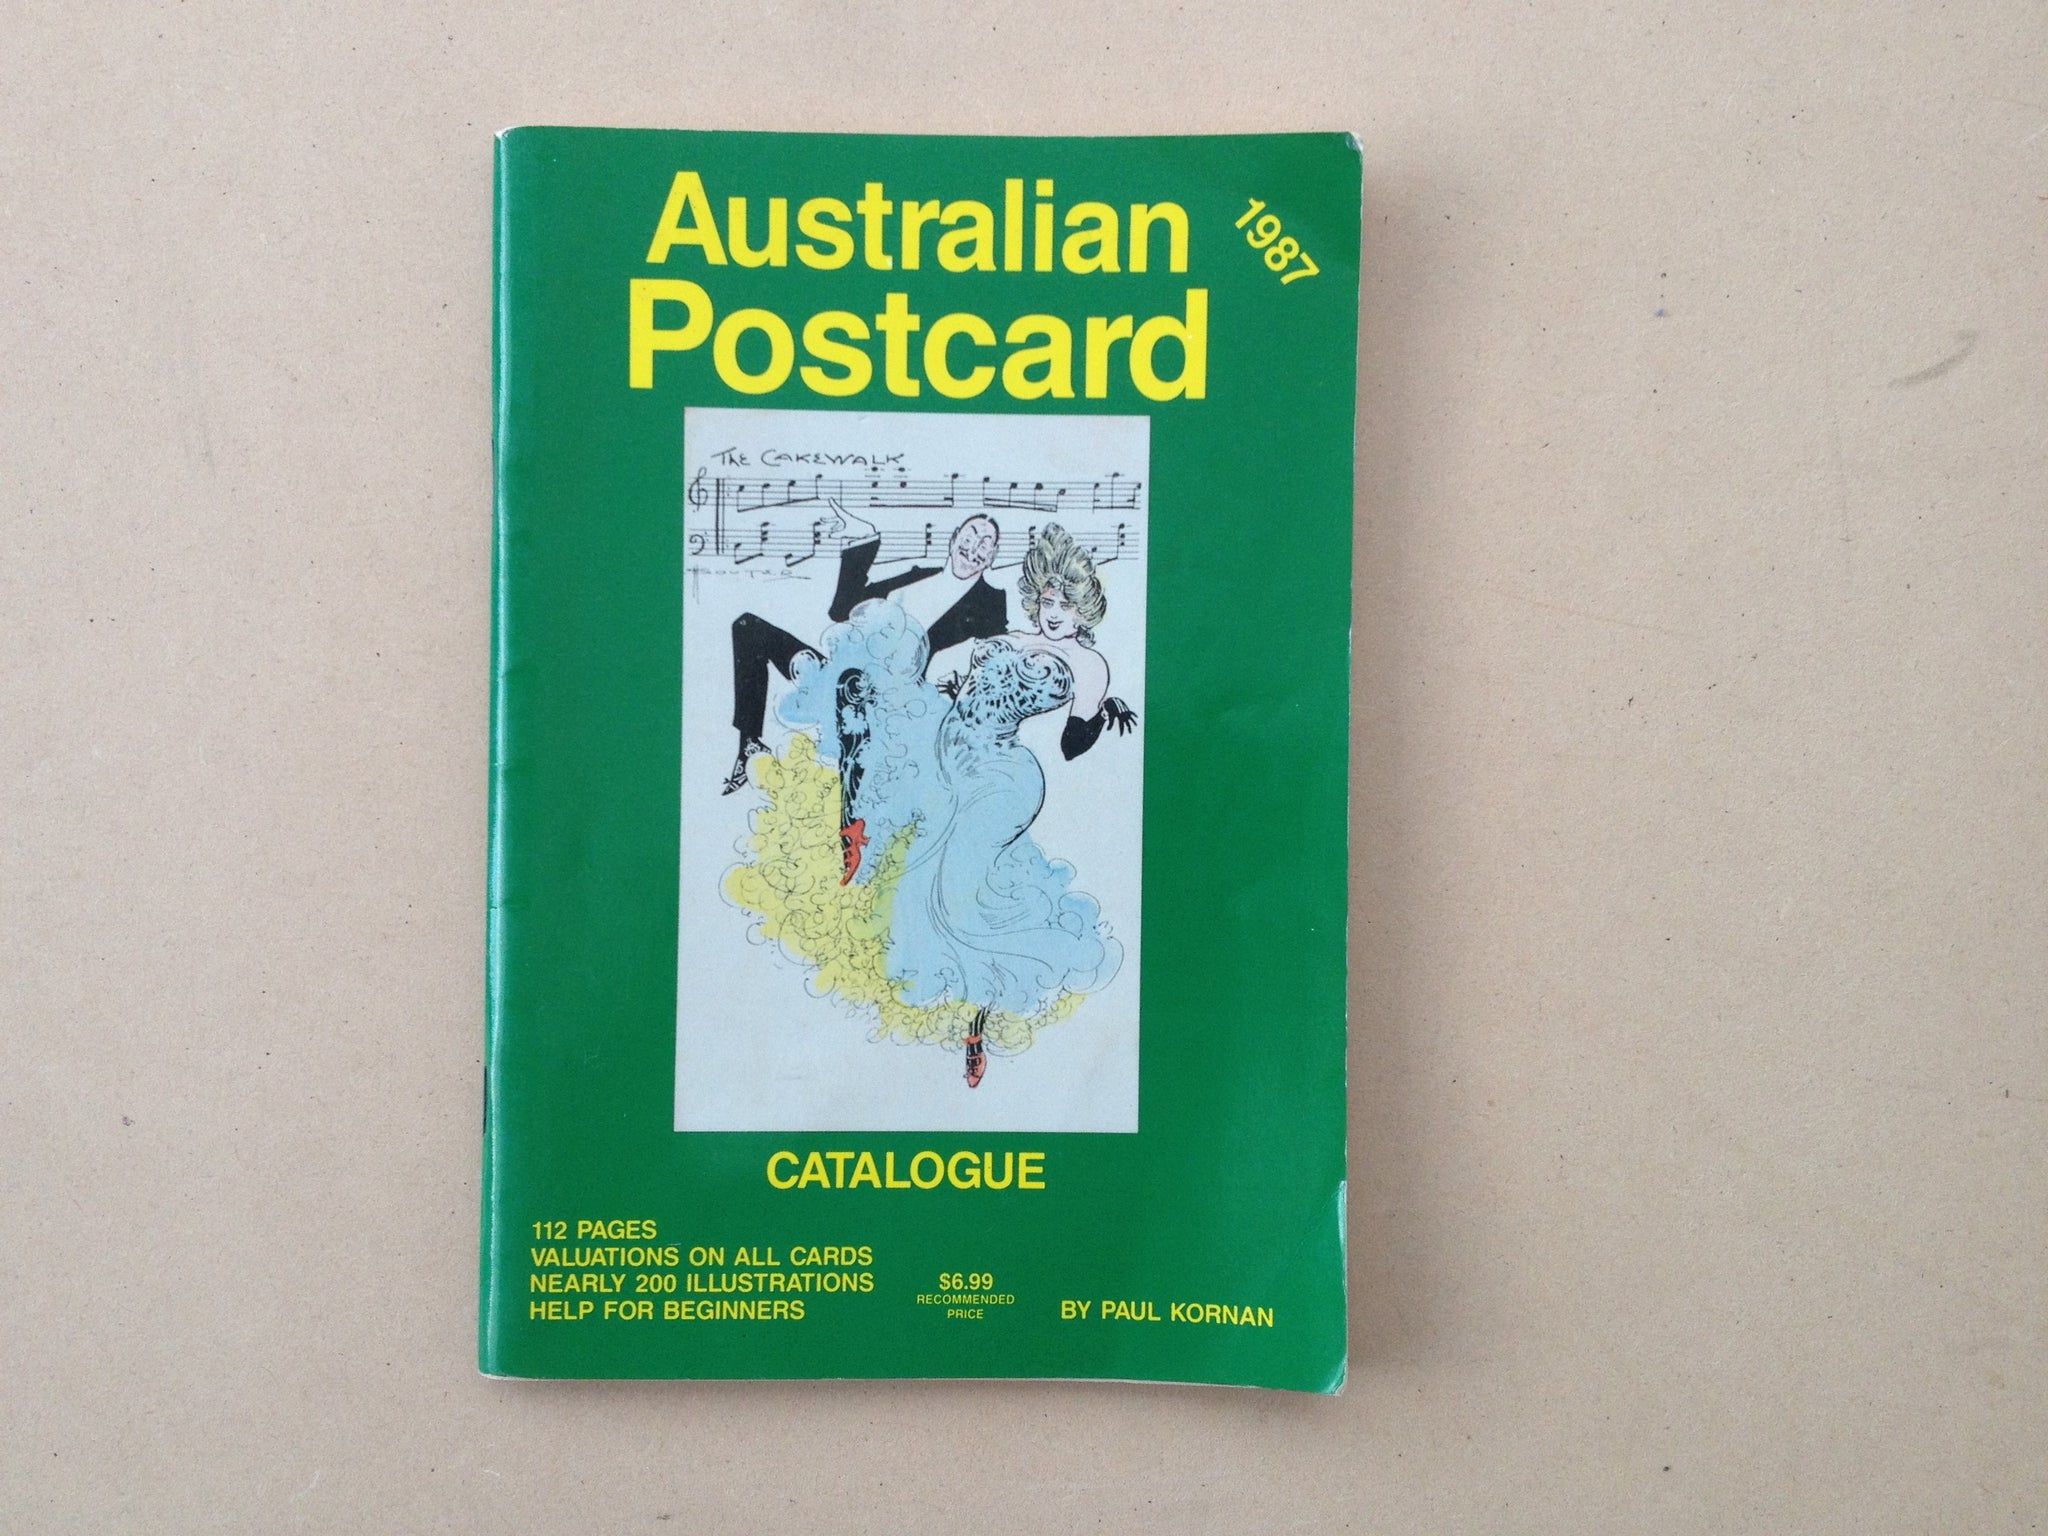 1987 Australian Postcard Catalogue by Paul Kornan